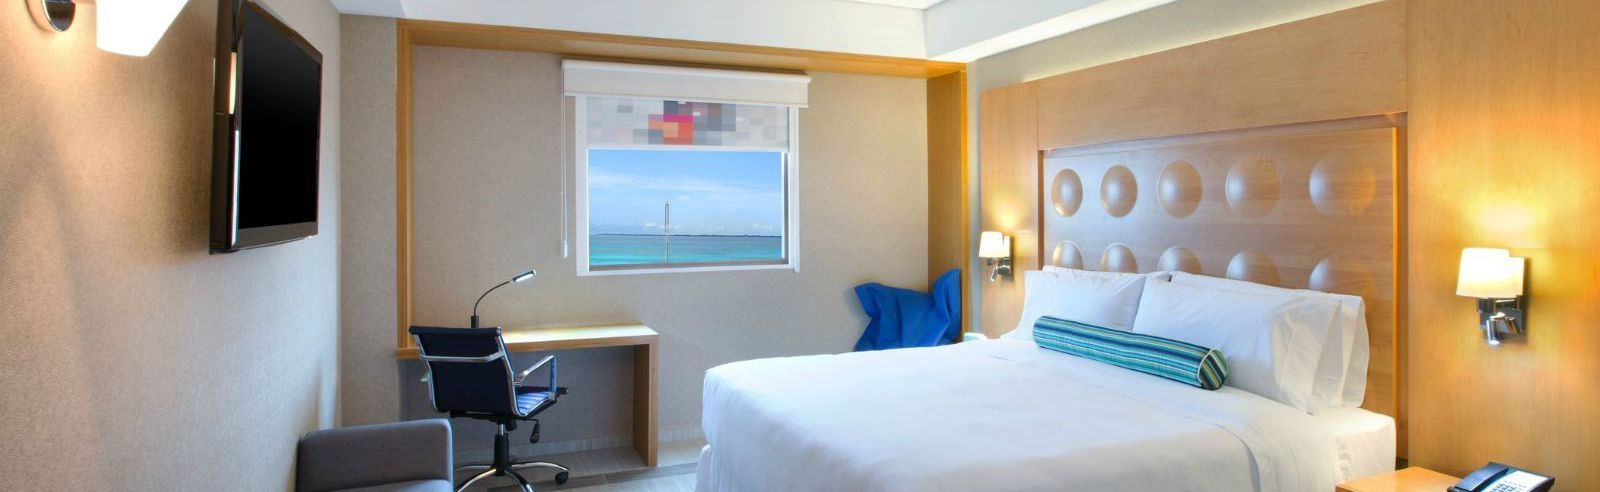 Cancun Boutique Hotel - Aloft Cancun